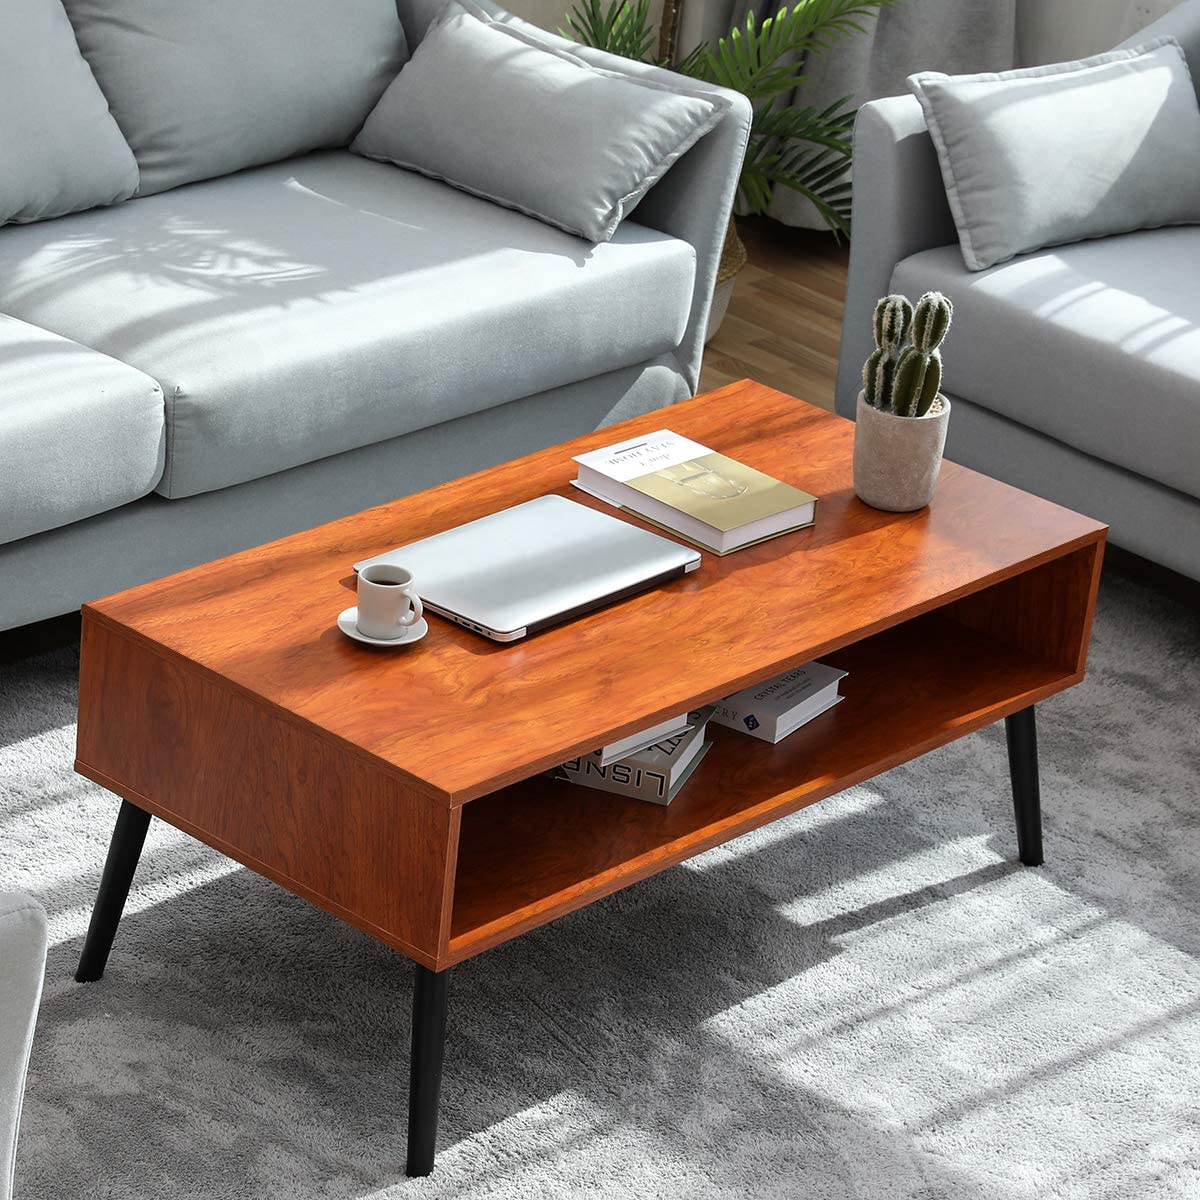 Coffee Table Double Layer, Living Room Table with Storage Shelf 2-Tier Cocktail Table Mid-Century Modern Open Space Design Drawers